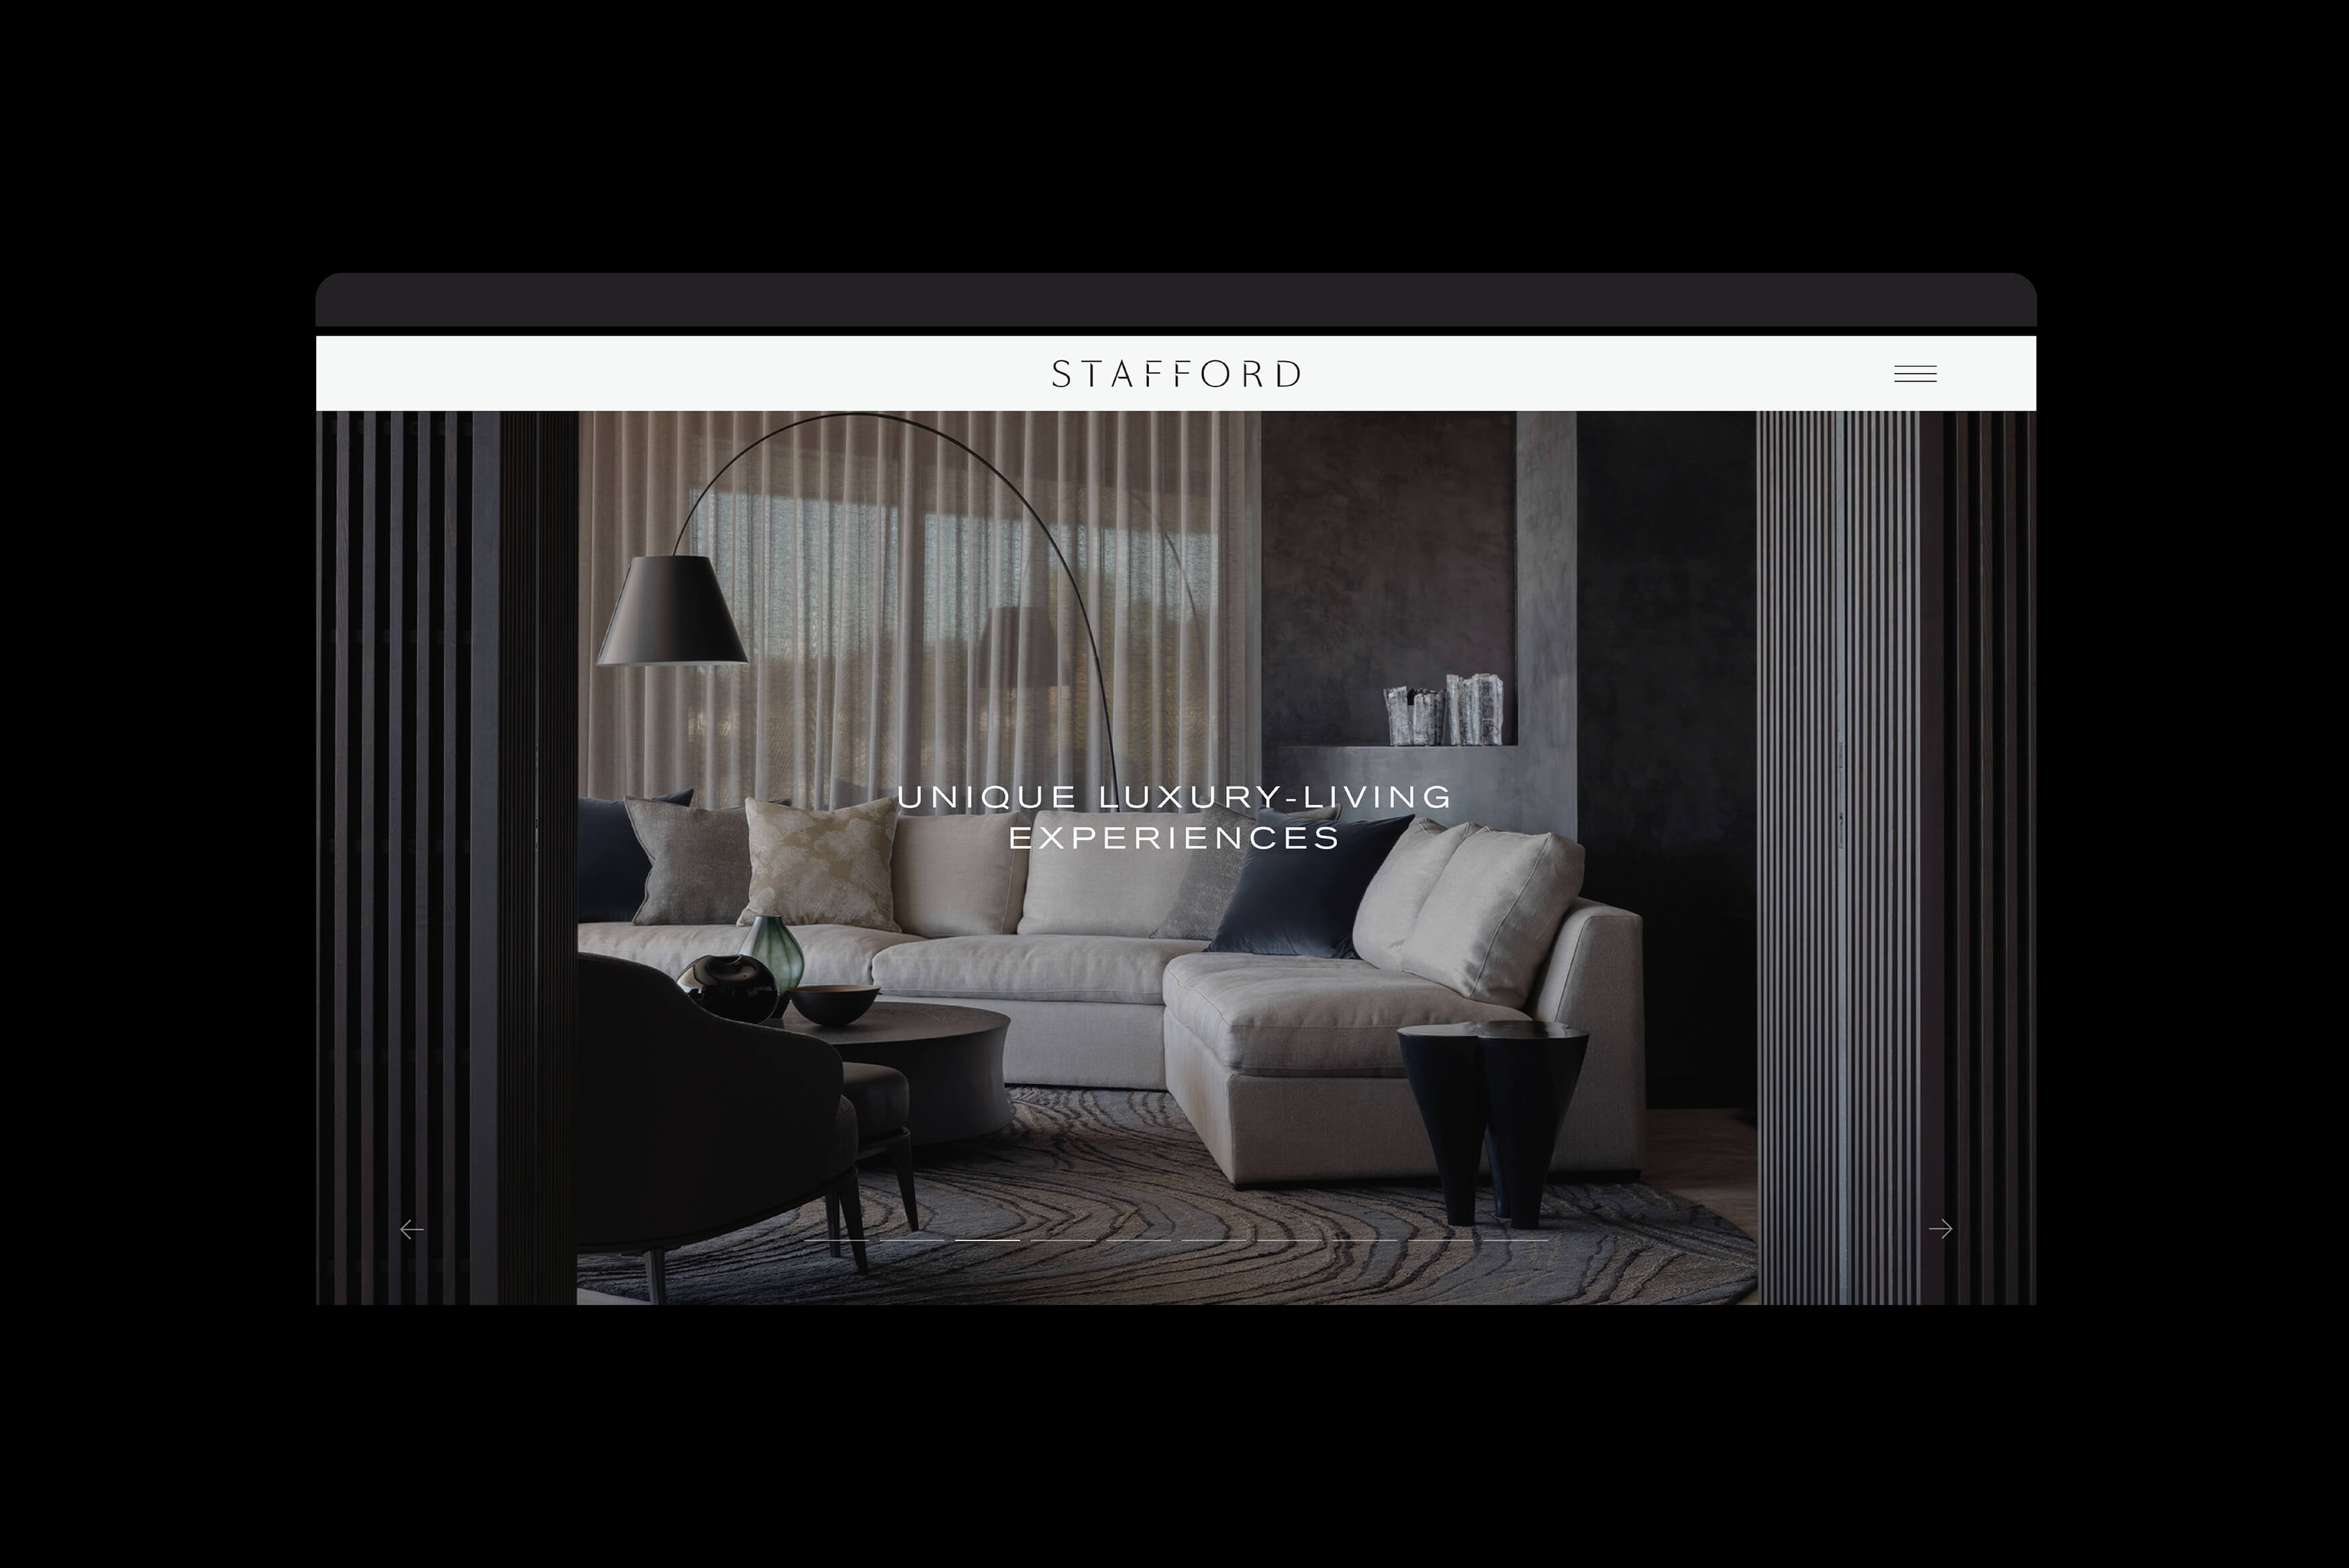 Stafford Architecture - Digital experience, website visual of project page on desktop